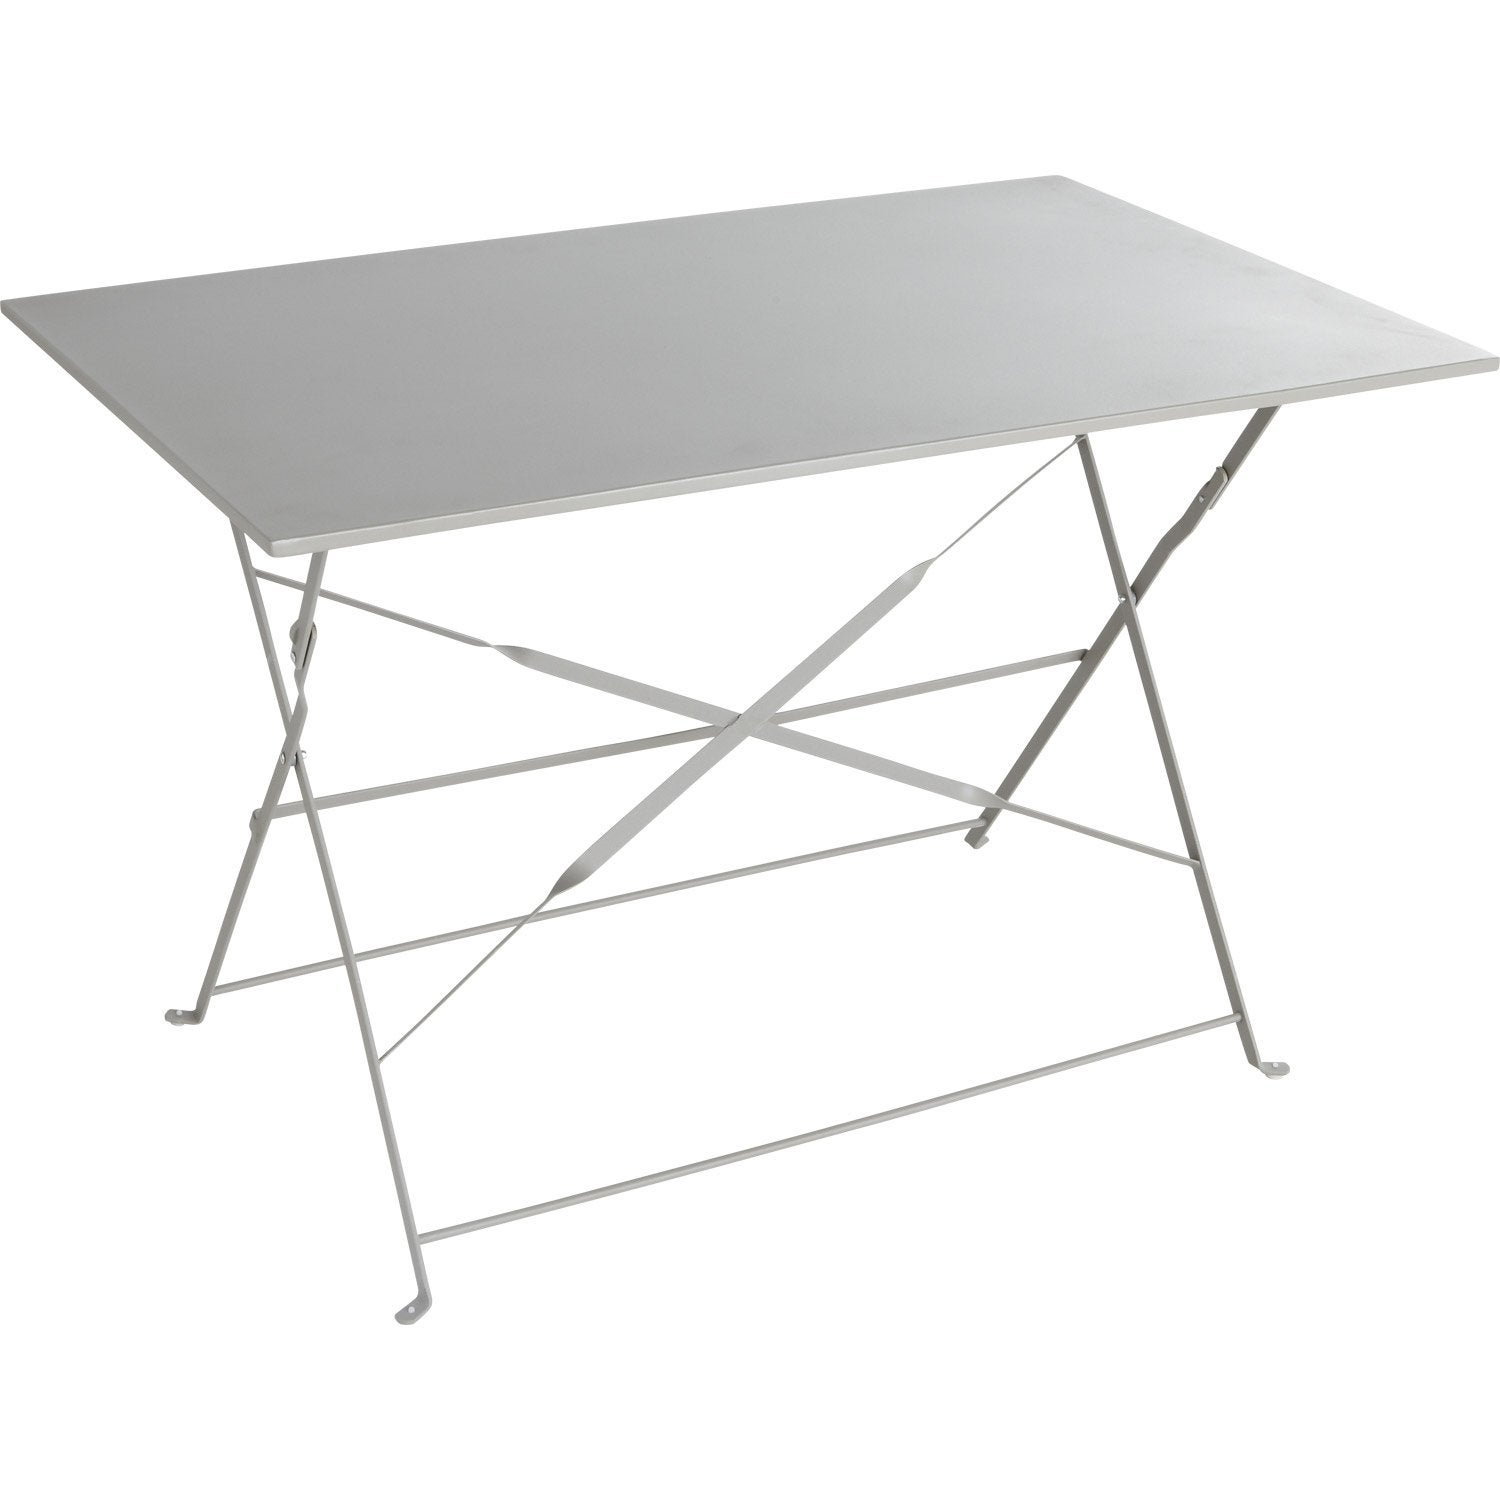 Table de jardin naterial flore rectangulaire gris 4 for Table de cuisine pliante leroy merlin